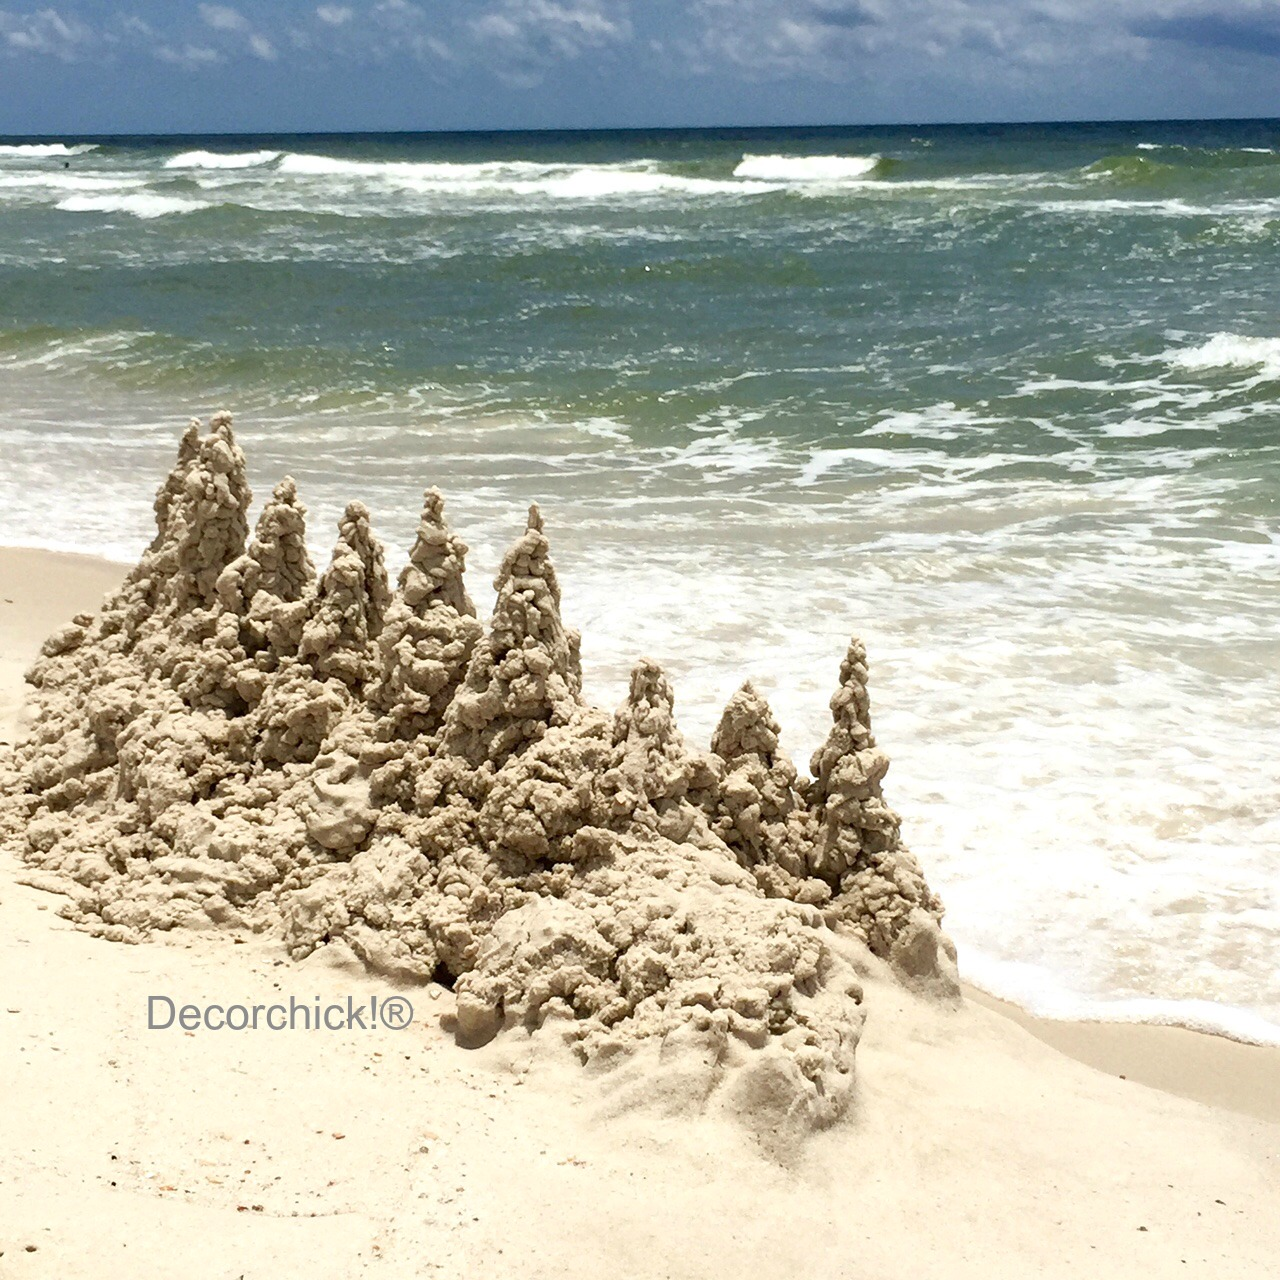 Cool Sandcastle | Decorchick!®